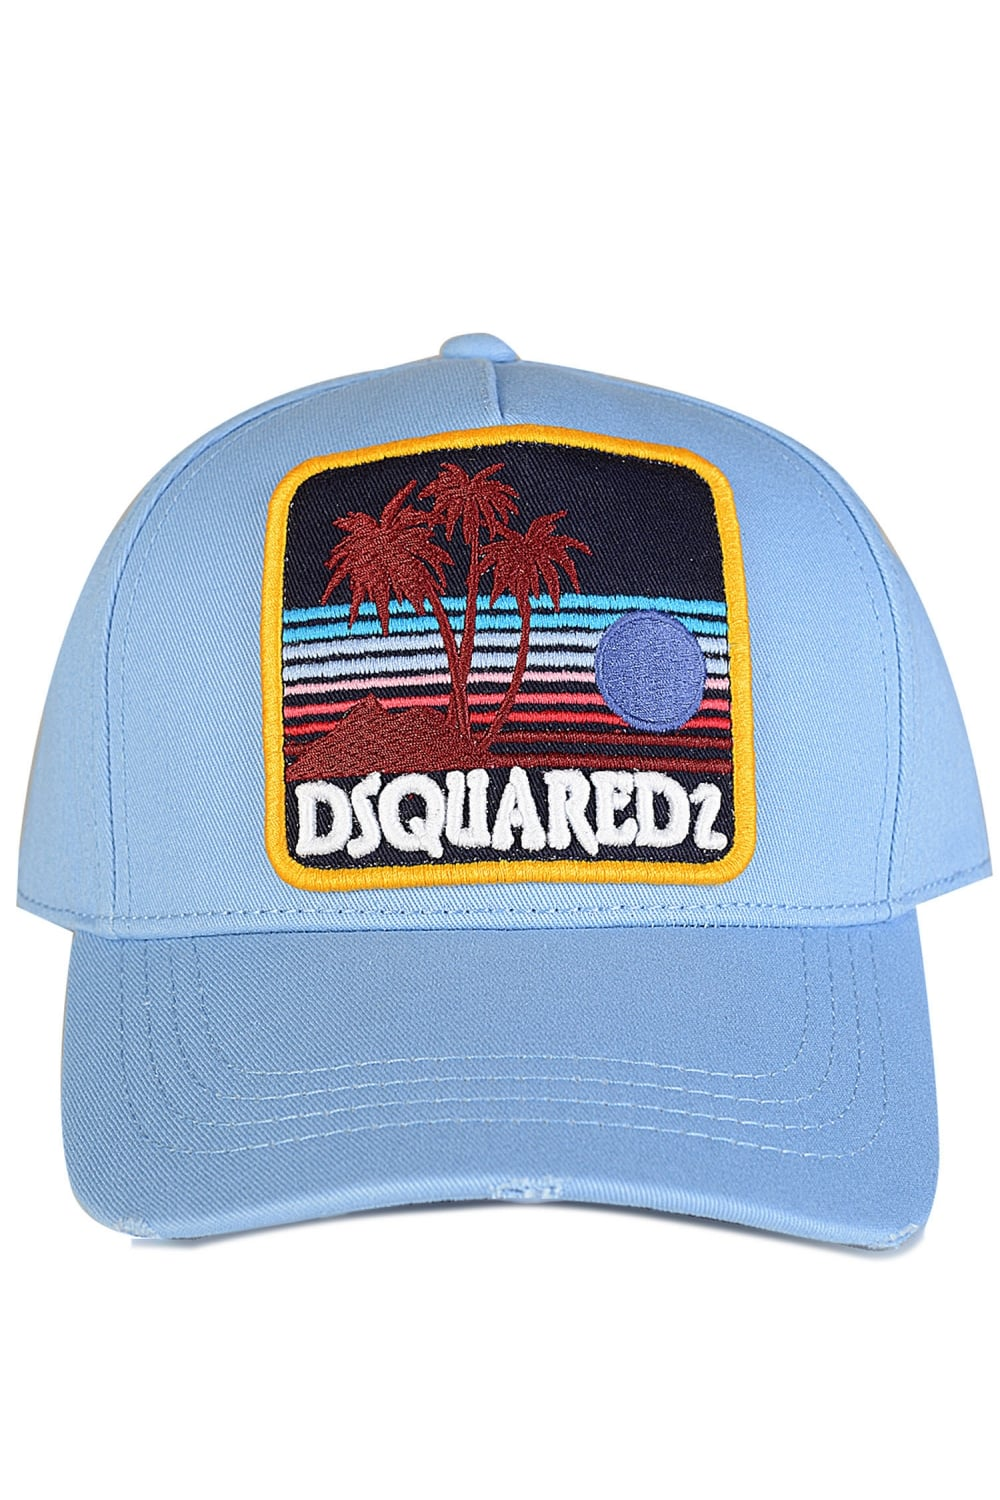 DSQUARED2 Dsquared Logo Patch Baseball Cap - Clothing from Circle ... 60c693032cdf